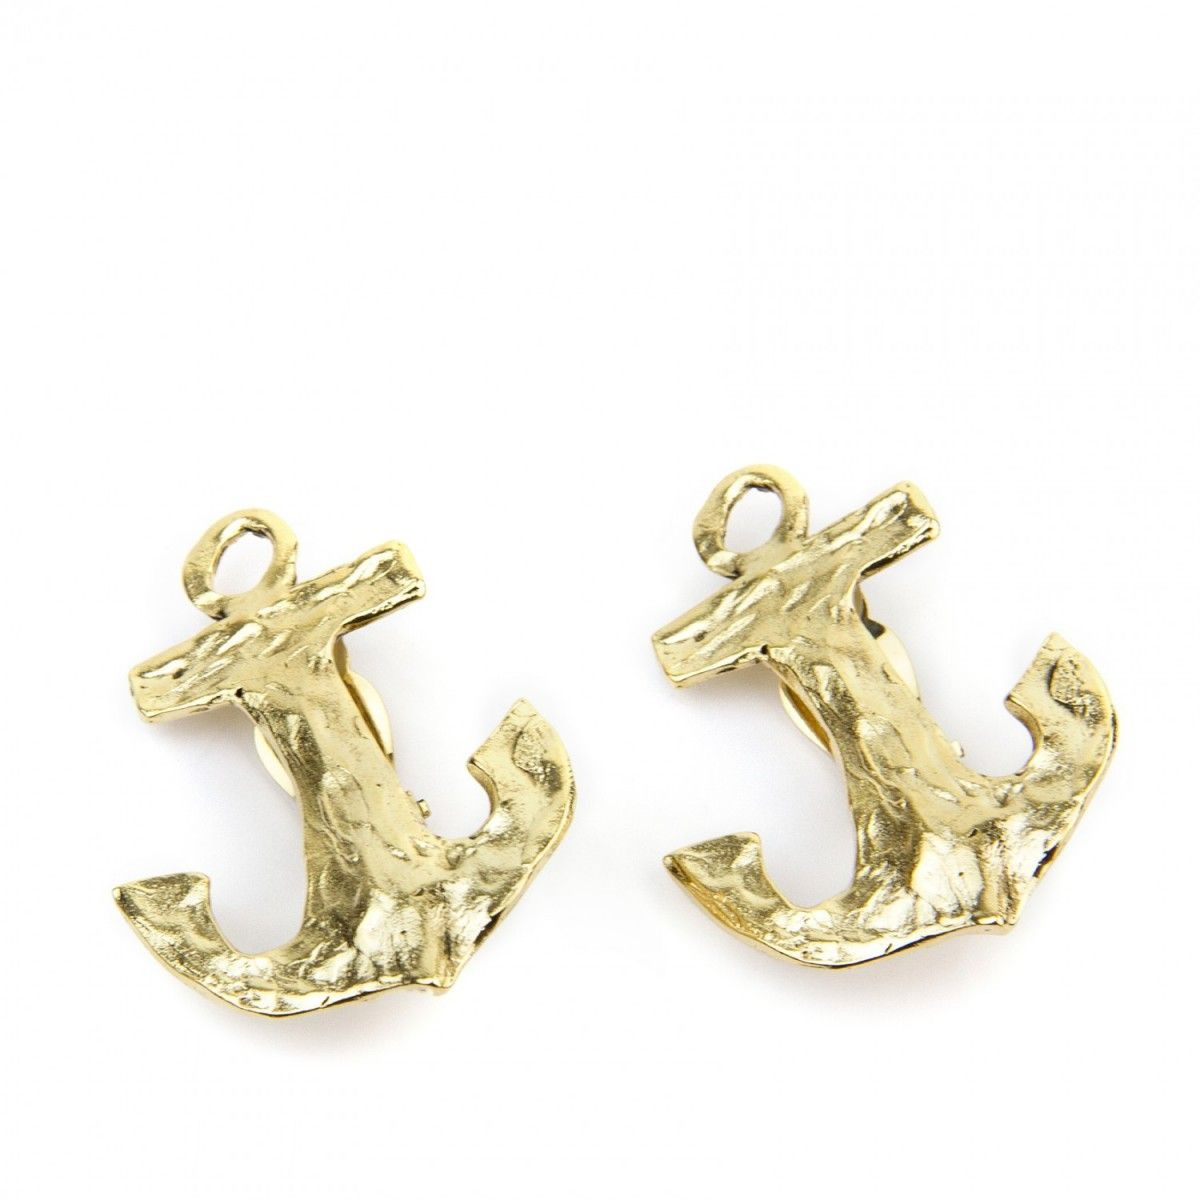 Anchor green gold earrings with carved logo and clip closure They